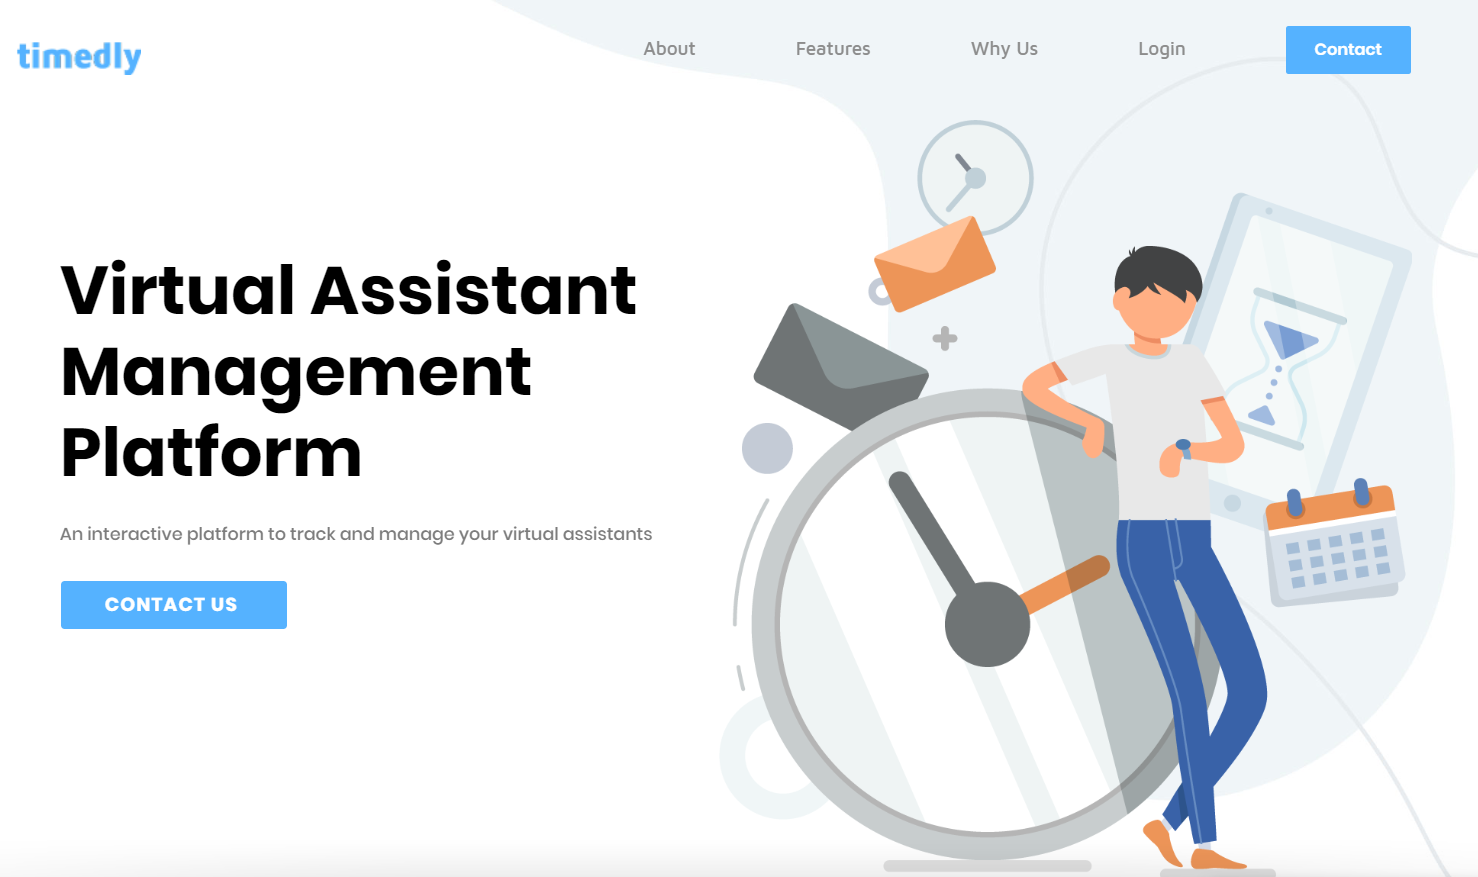 Virtual Assistant Management Platform